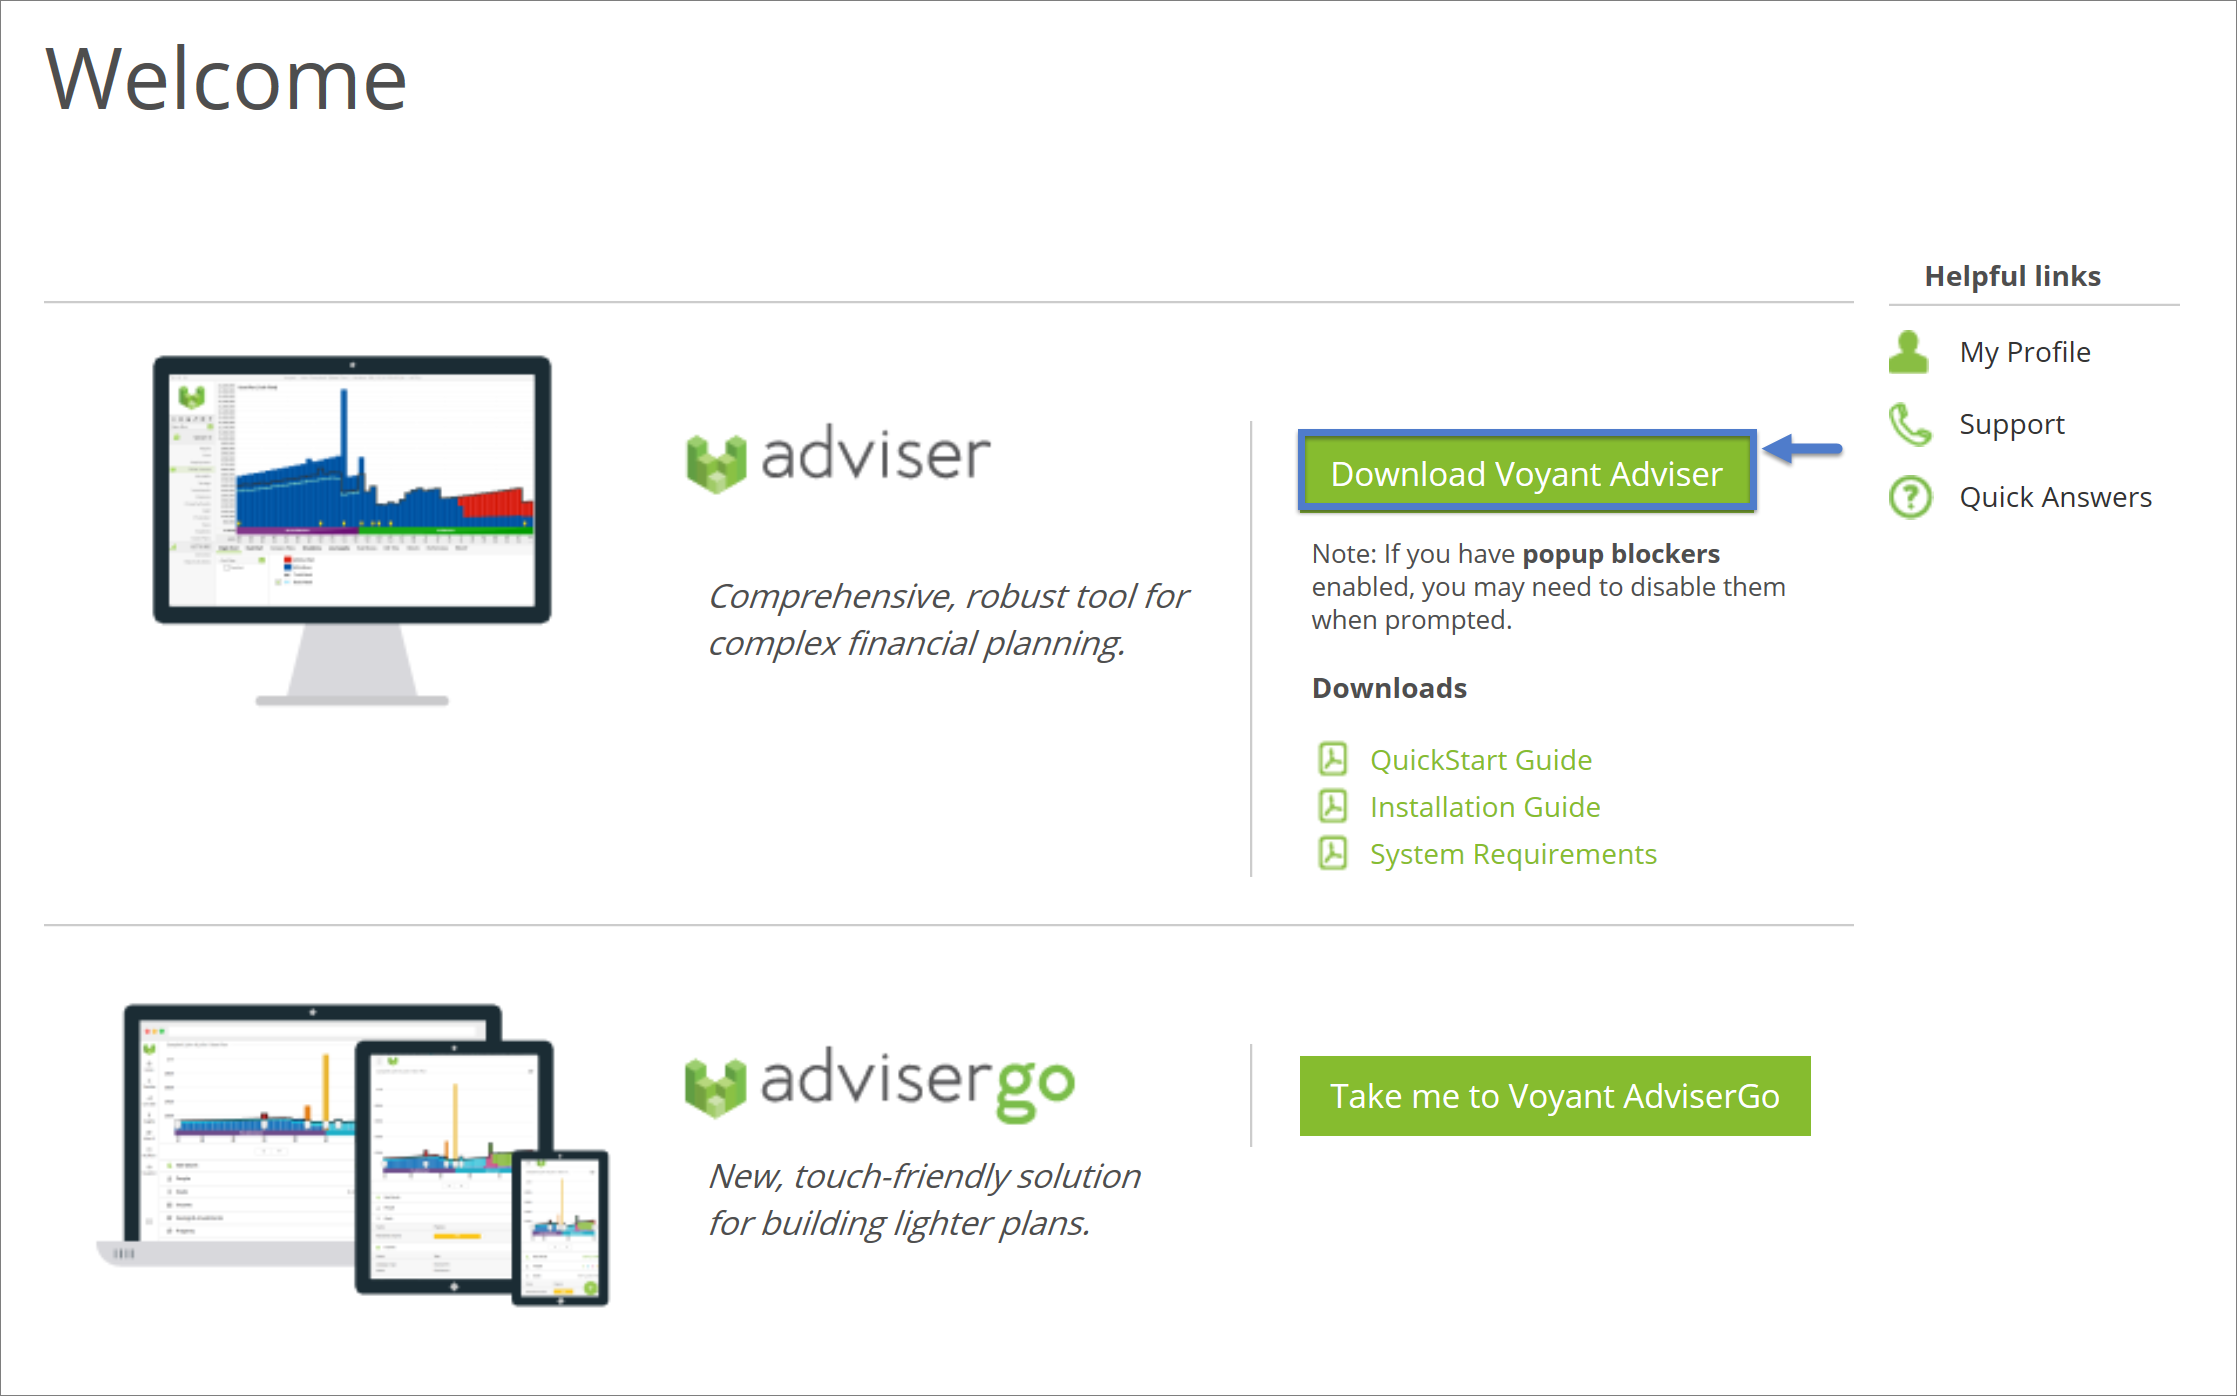 Install Voyant Adviser on a new or an additional computer or